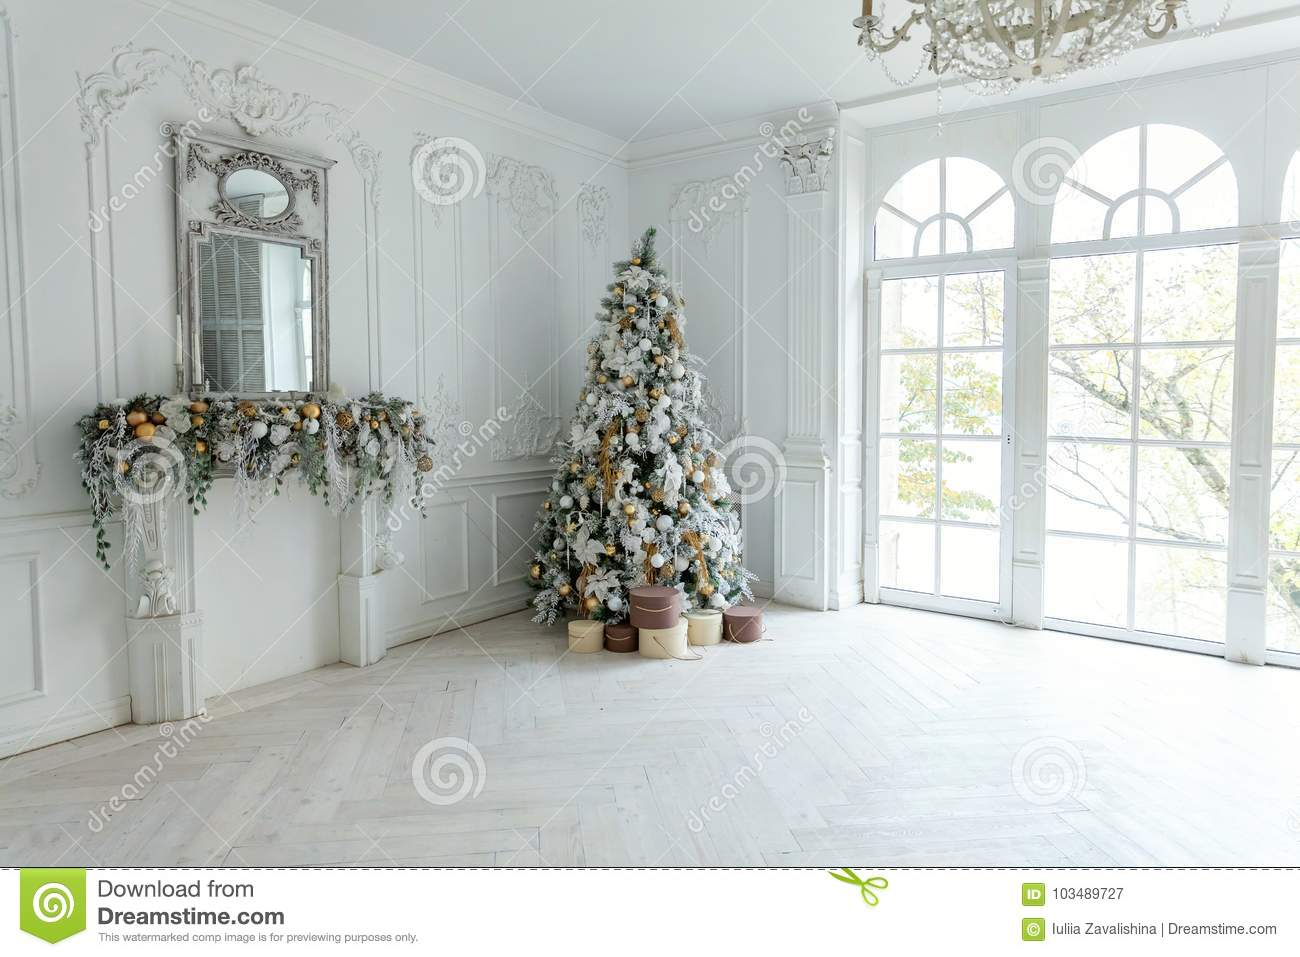 download christmas tree with white and gold decorations stock image image of gold beautiful